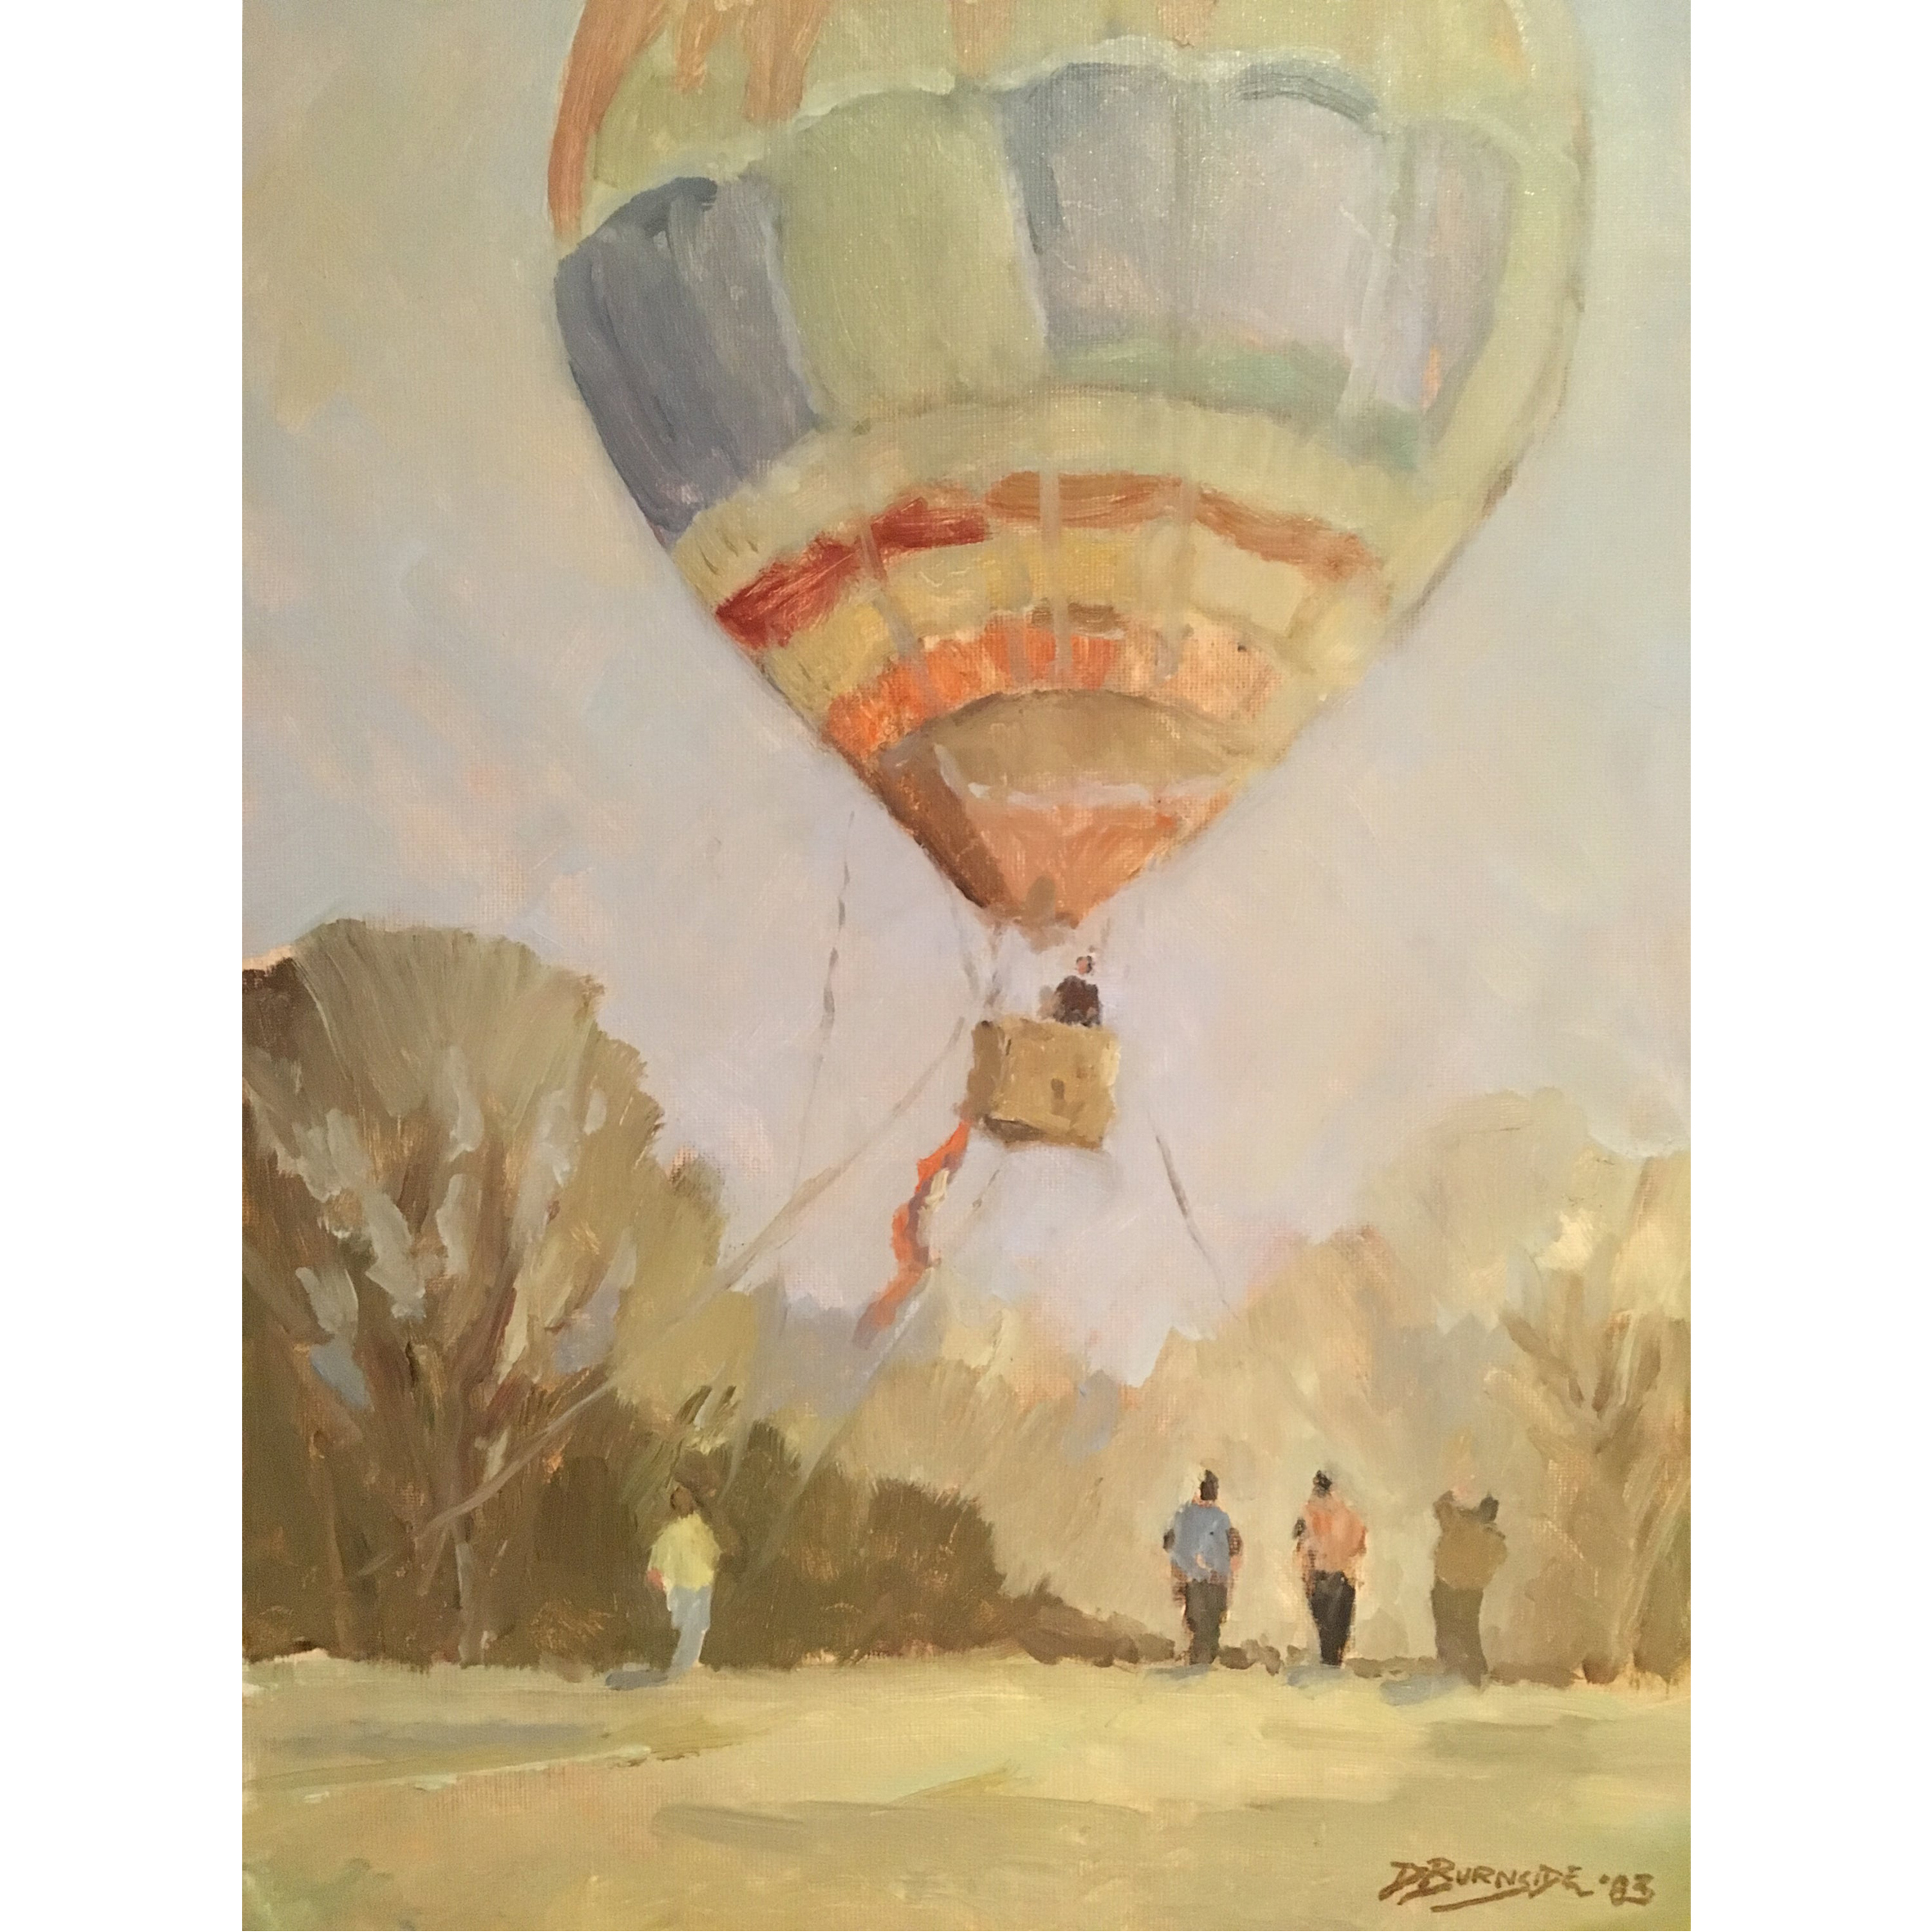 Dudley Burnside: Hot Air Balloon Rising - oil on board 1983